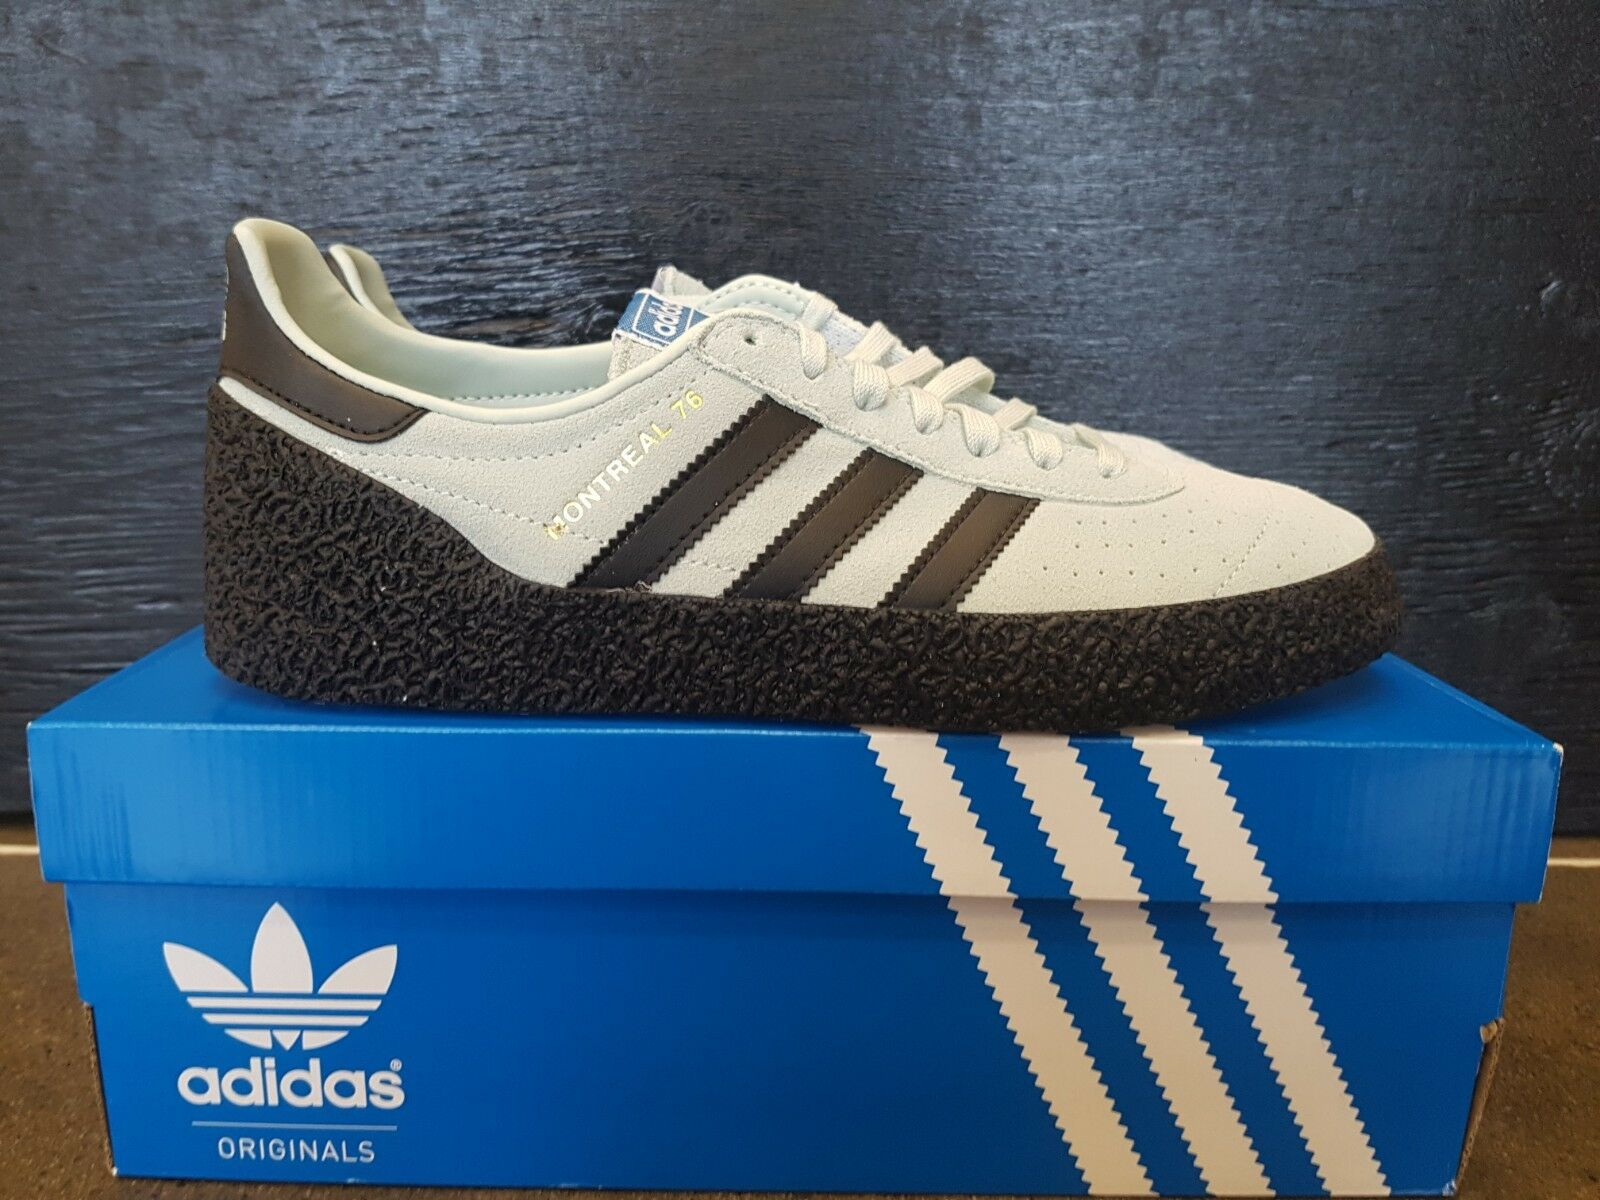 finest selection 7cb36 eae21 NEW IN THE BOX ADIDAS MONTREAL 76 BD7634 VAPGRN BLACK SHOES FOR MEN